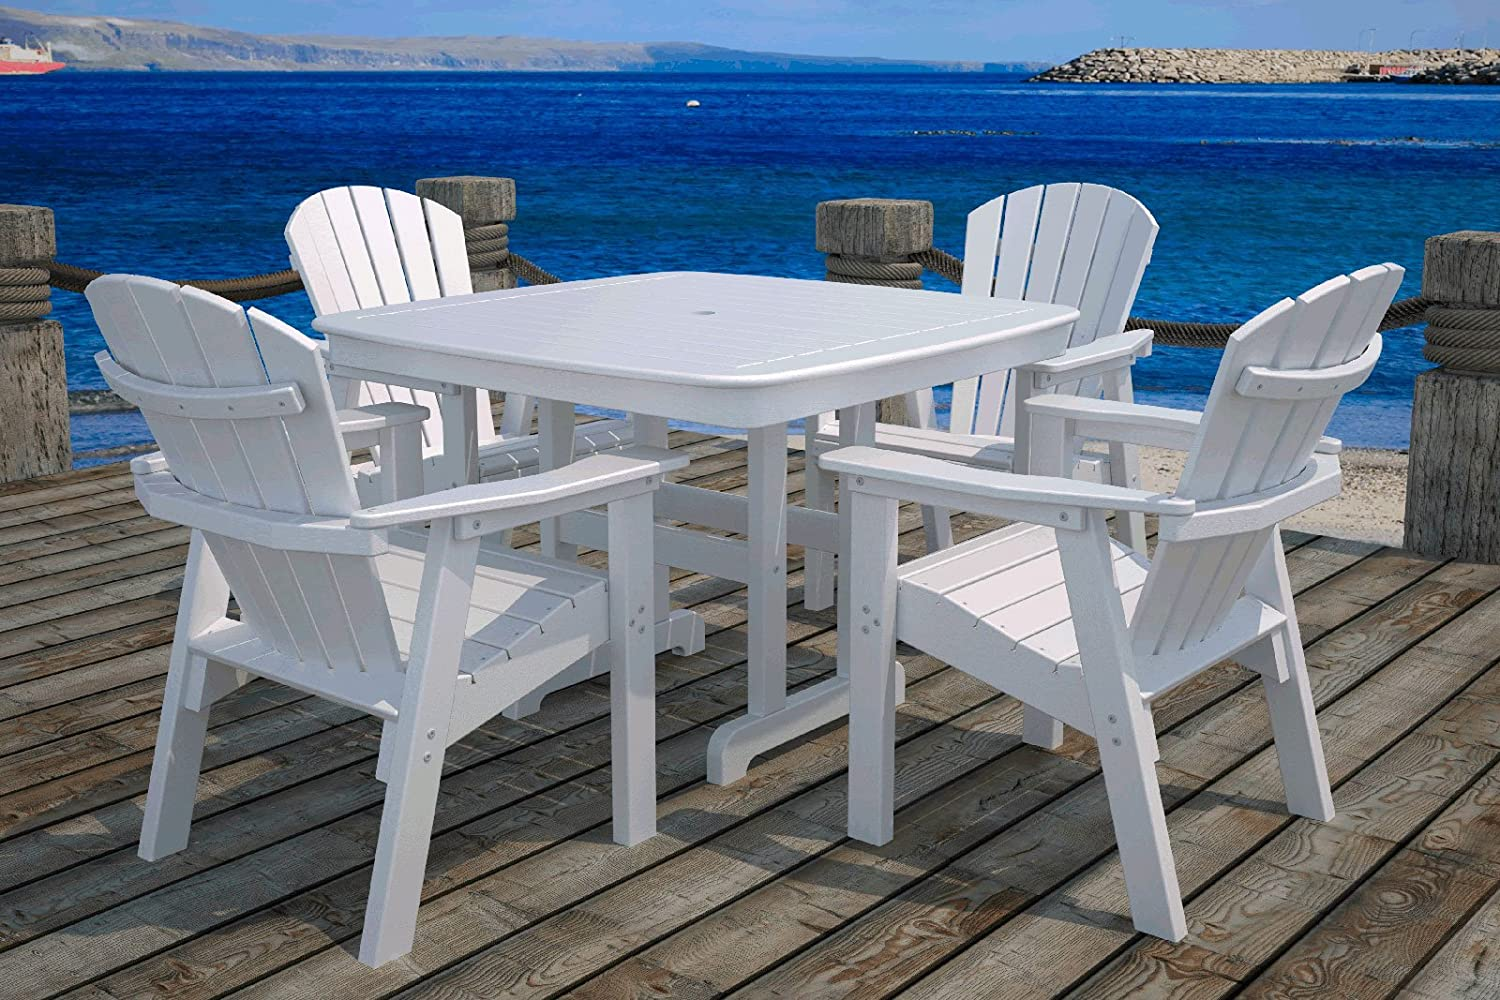 Amazon.com : POLYWOOD Outdoor Furniture Nautical 37 Inch Dining Table,  White Recycled Plastic Materials : Patio Dining Tables : Garden U0026 Outdoor